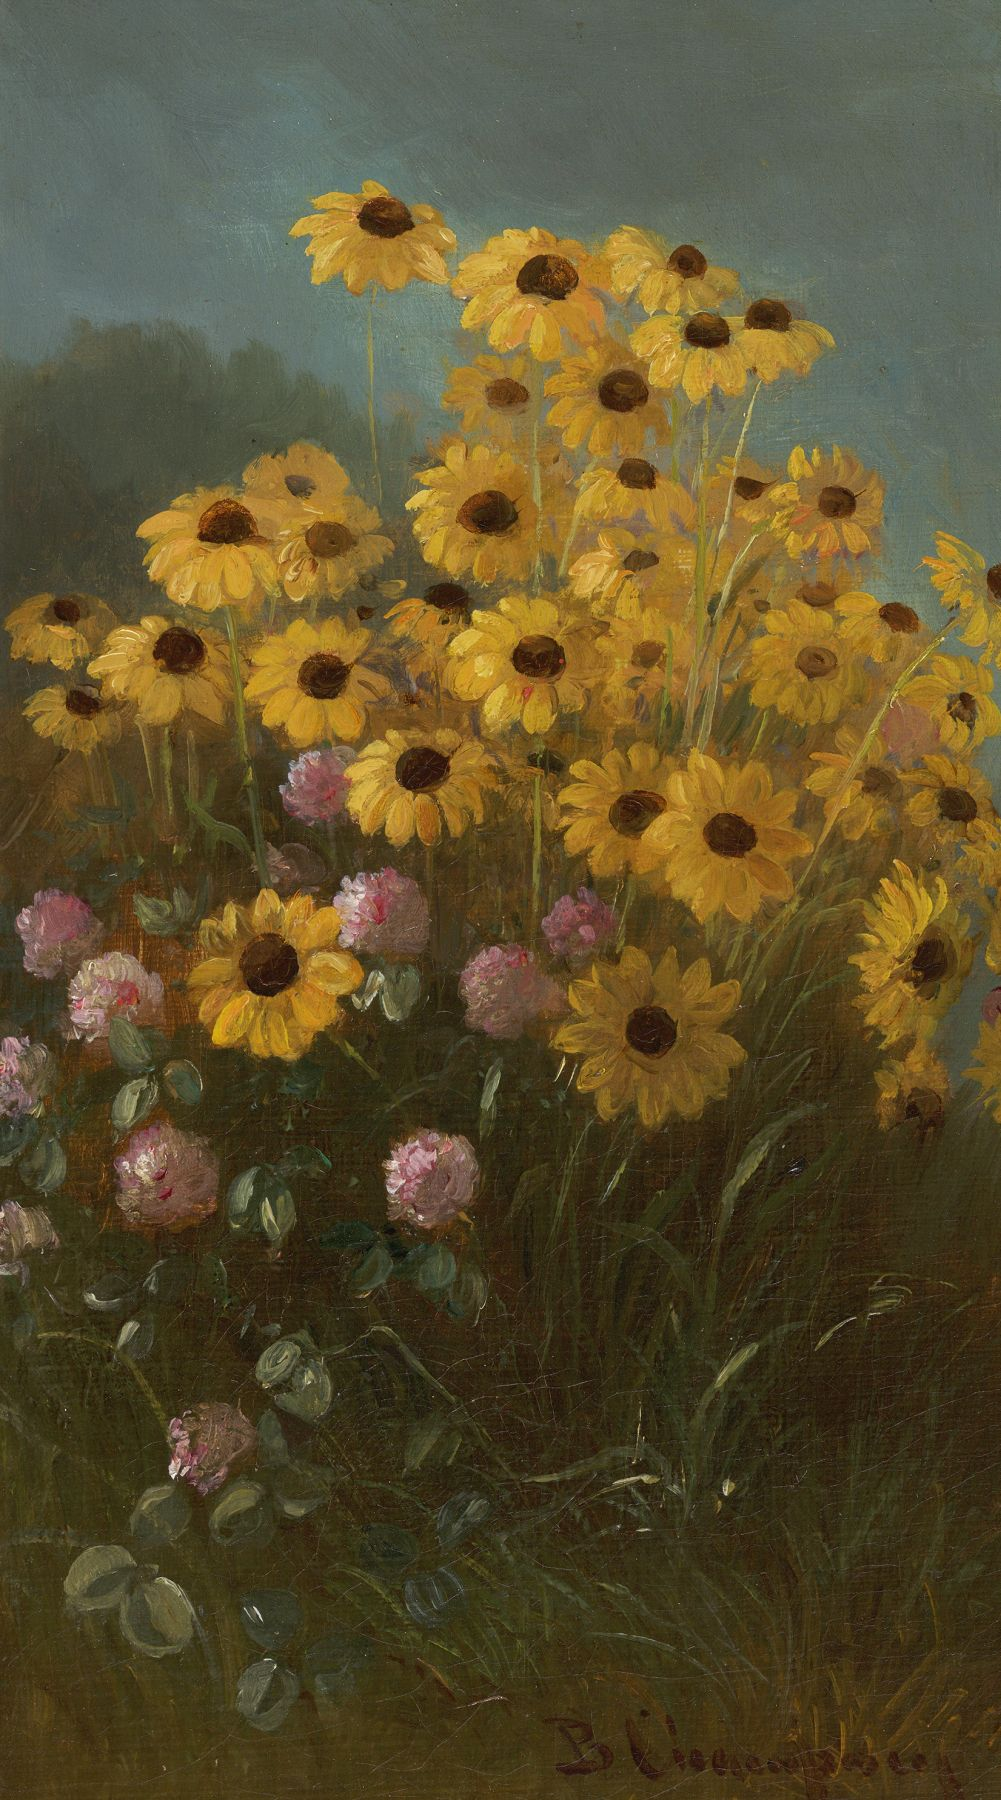 Benjamin Champney (1817-1907), Still Life with Black-Eyed Susans and Clover